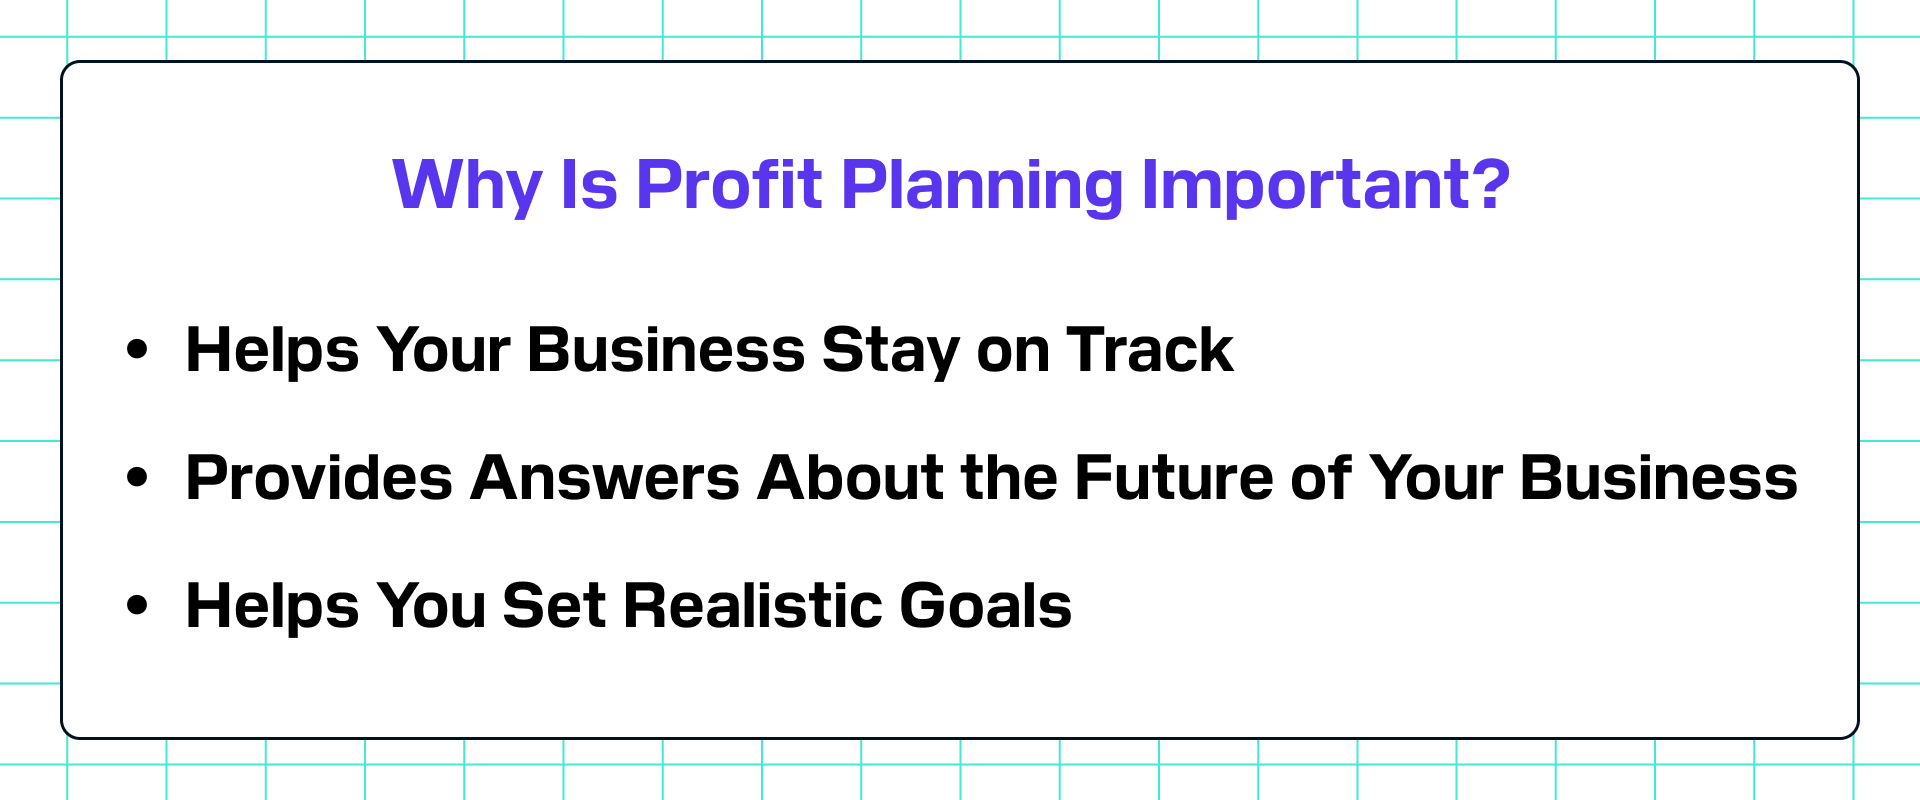 Why profit planning is important?